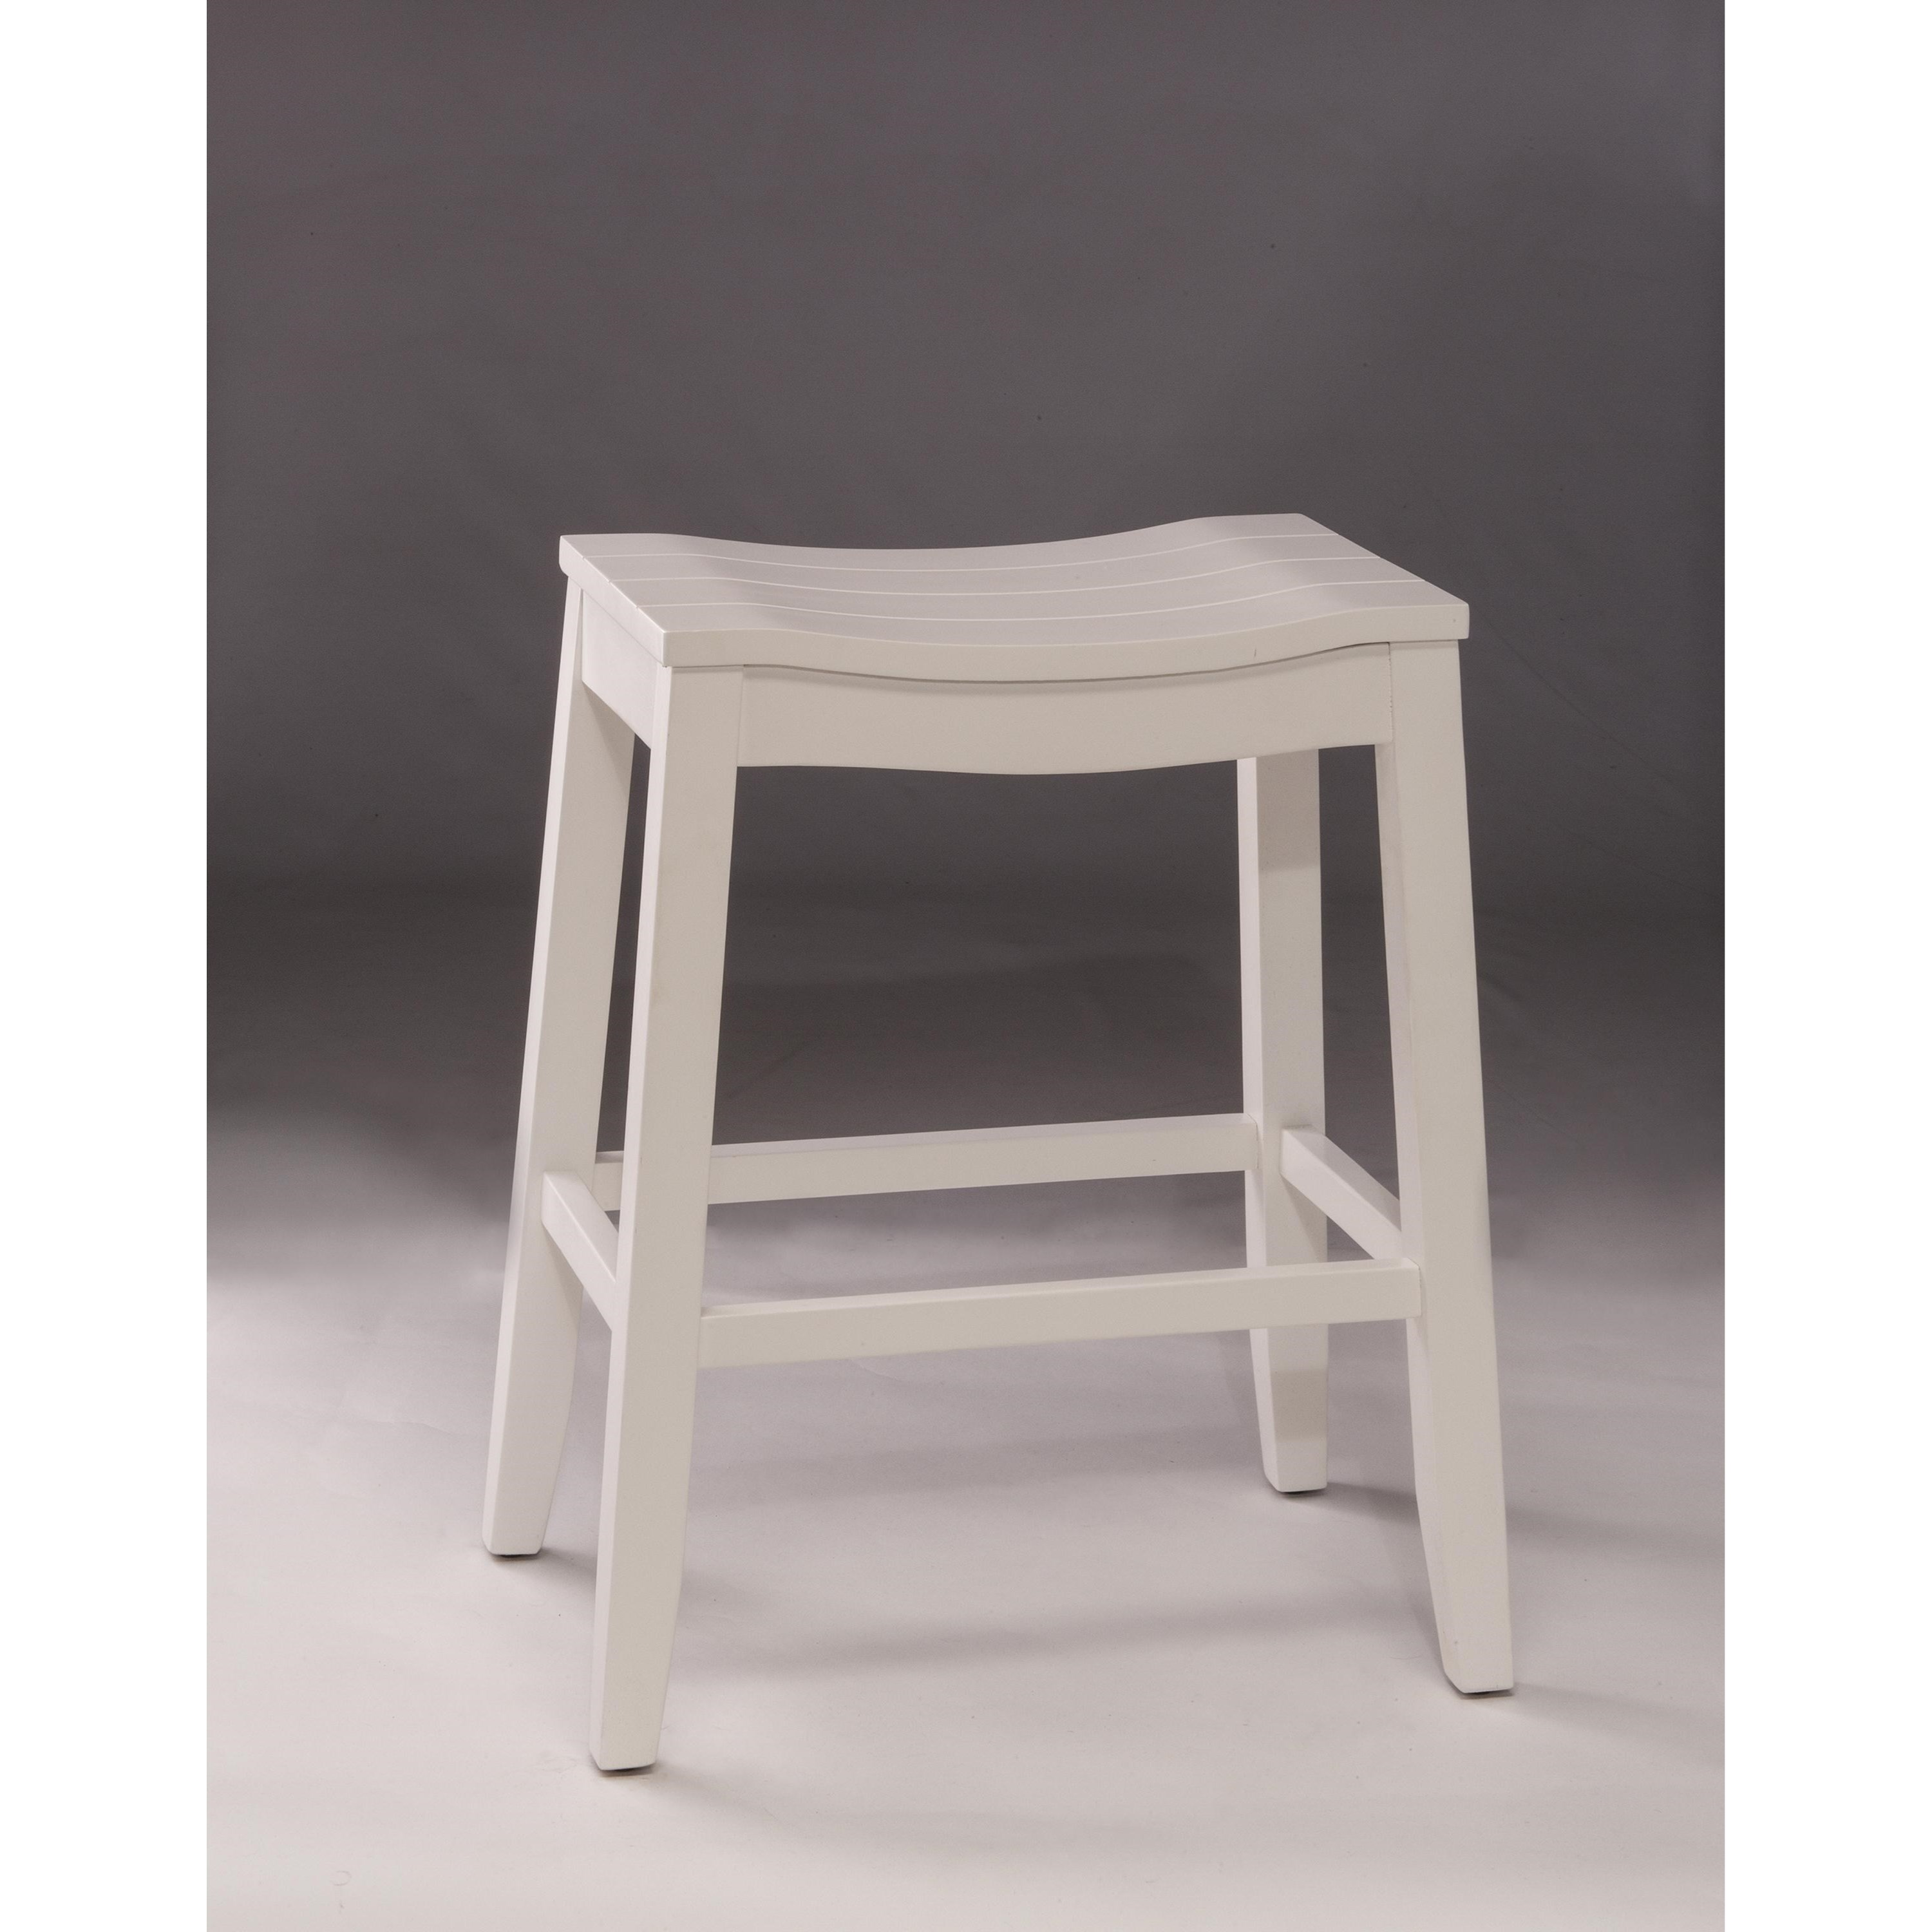 Hillsdale Backless Bar Stools White Backless Non Swivel